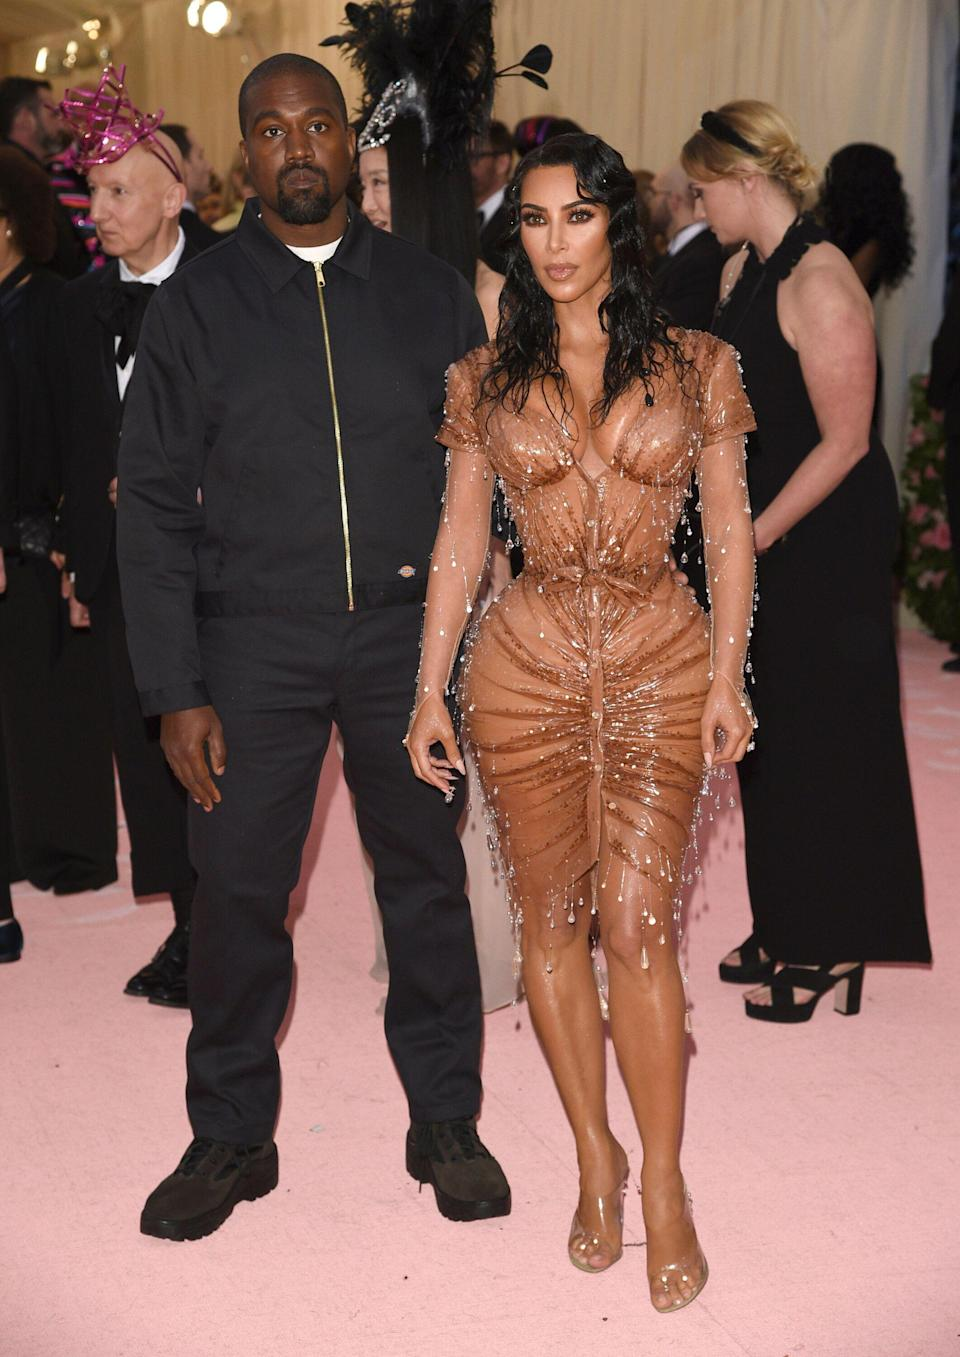 """Kanye West, left, and Kim Kardashian attend The Metropolitan Museum of Art's Costume Institute benefit gala celebrating the opening of the """"Camp: Notes on Fashion"""" exhibition on Monday, May 6, 2019, in New York. (Photo by Evan Agostini/Invision/AP)"""